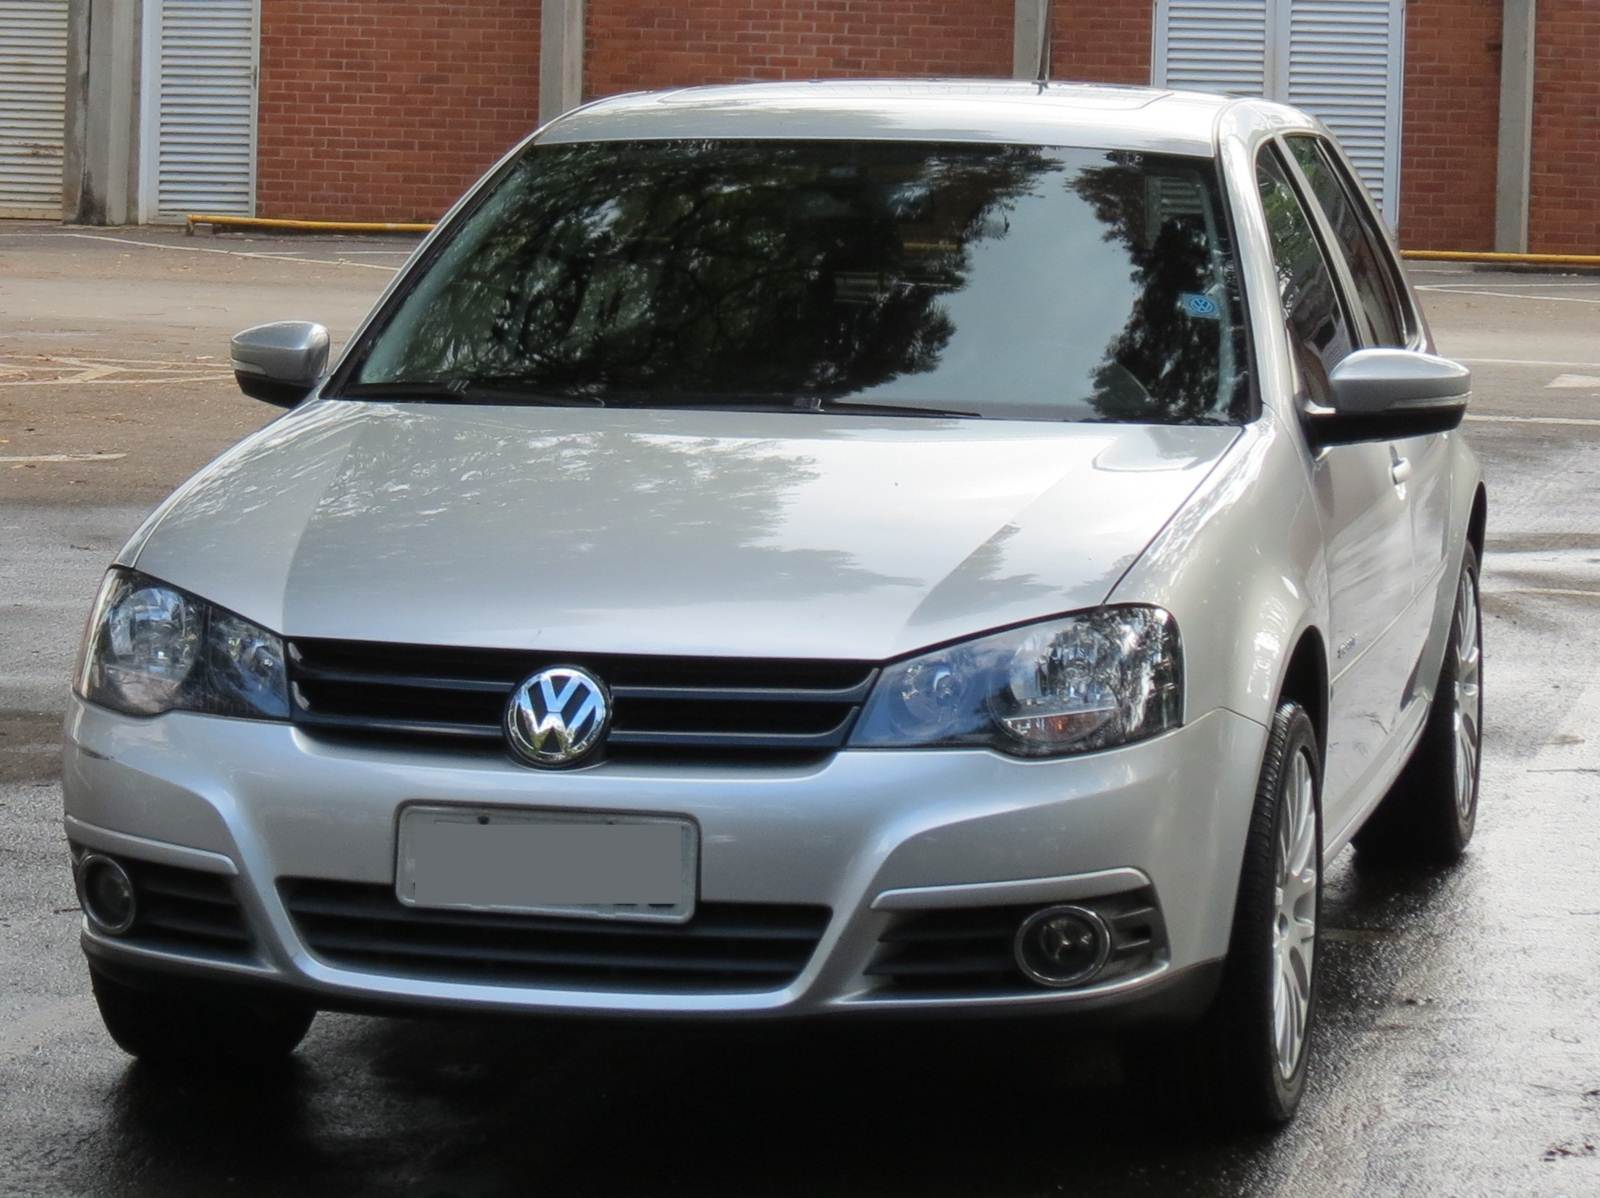 VW Golf MK4 2014 - 2.0 Sportline TipTronic